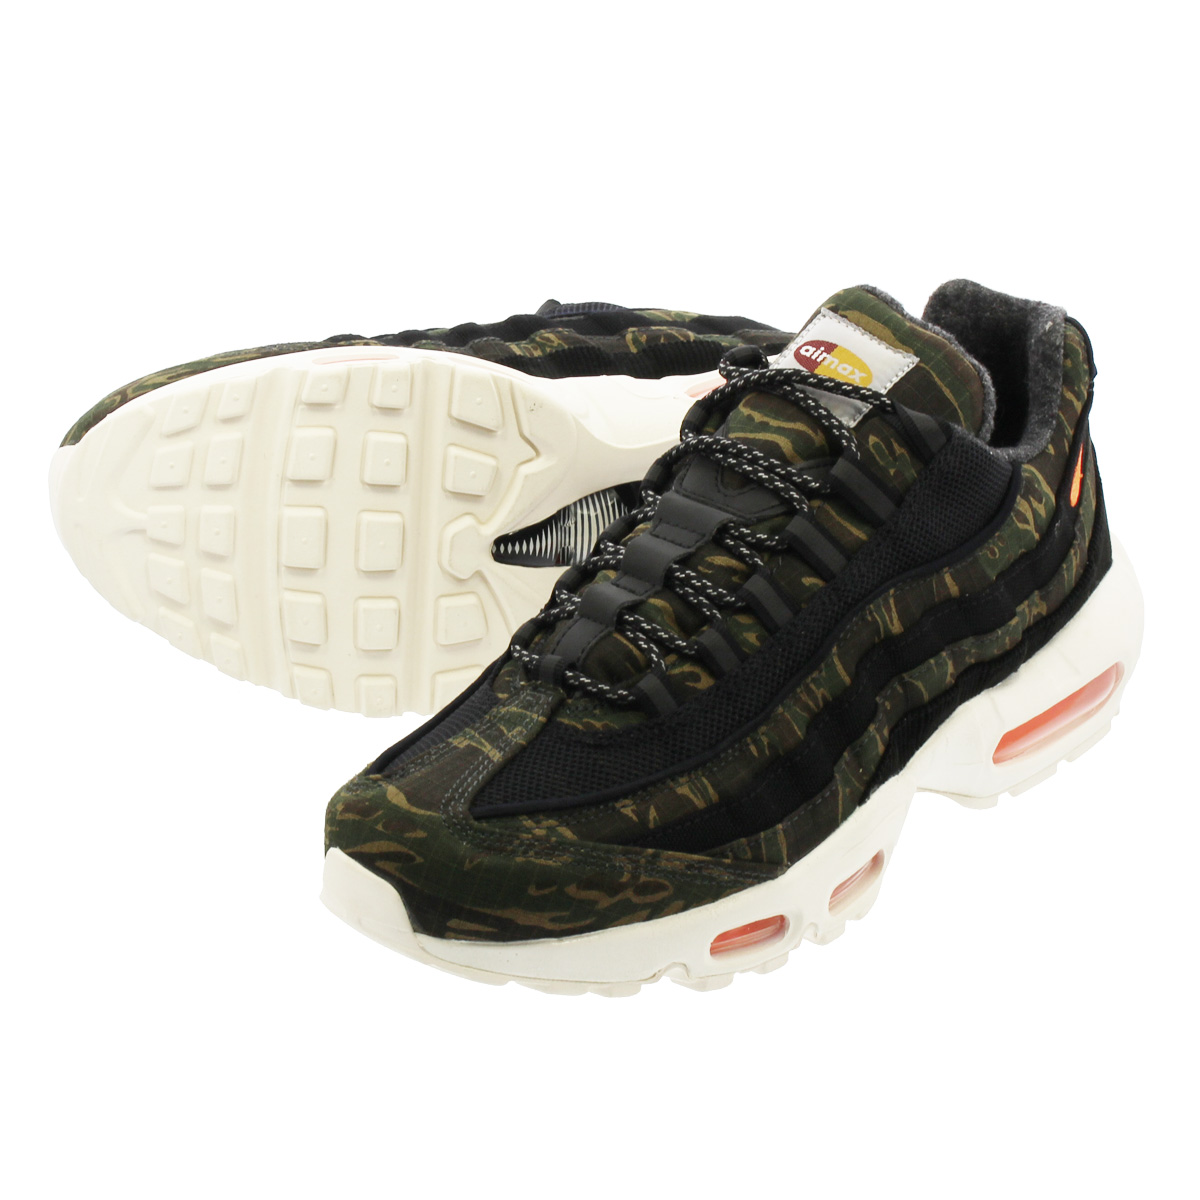 online store 2177e cafa5 NIKE AIR MAX 95 CARHARTT WIP Kie Ney AMAX 95 car heart BLACK TOTAL ORANGE